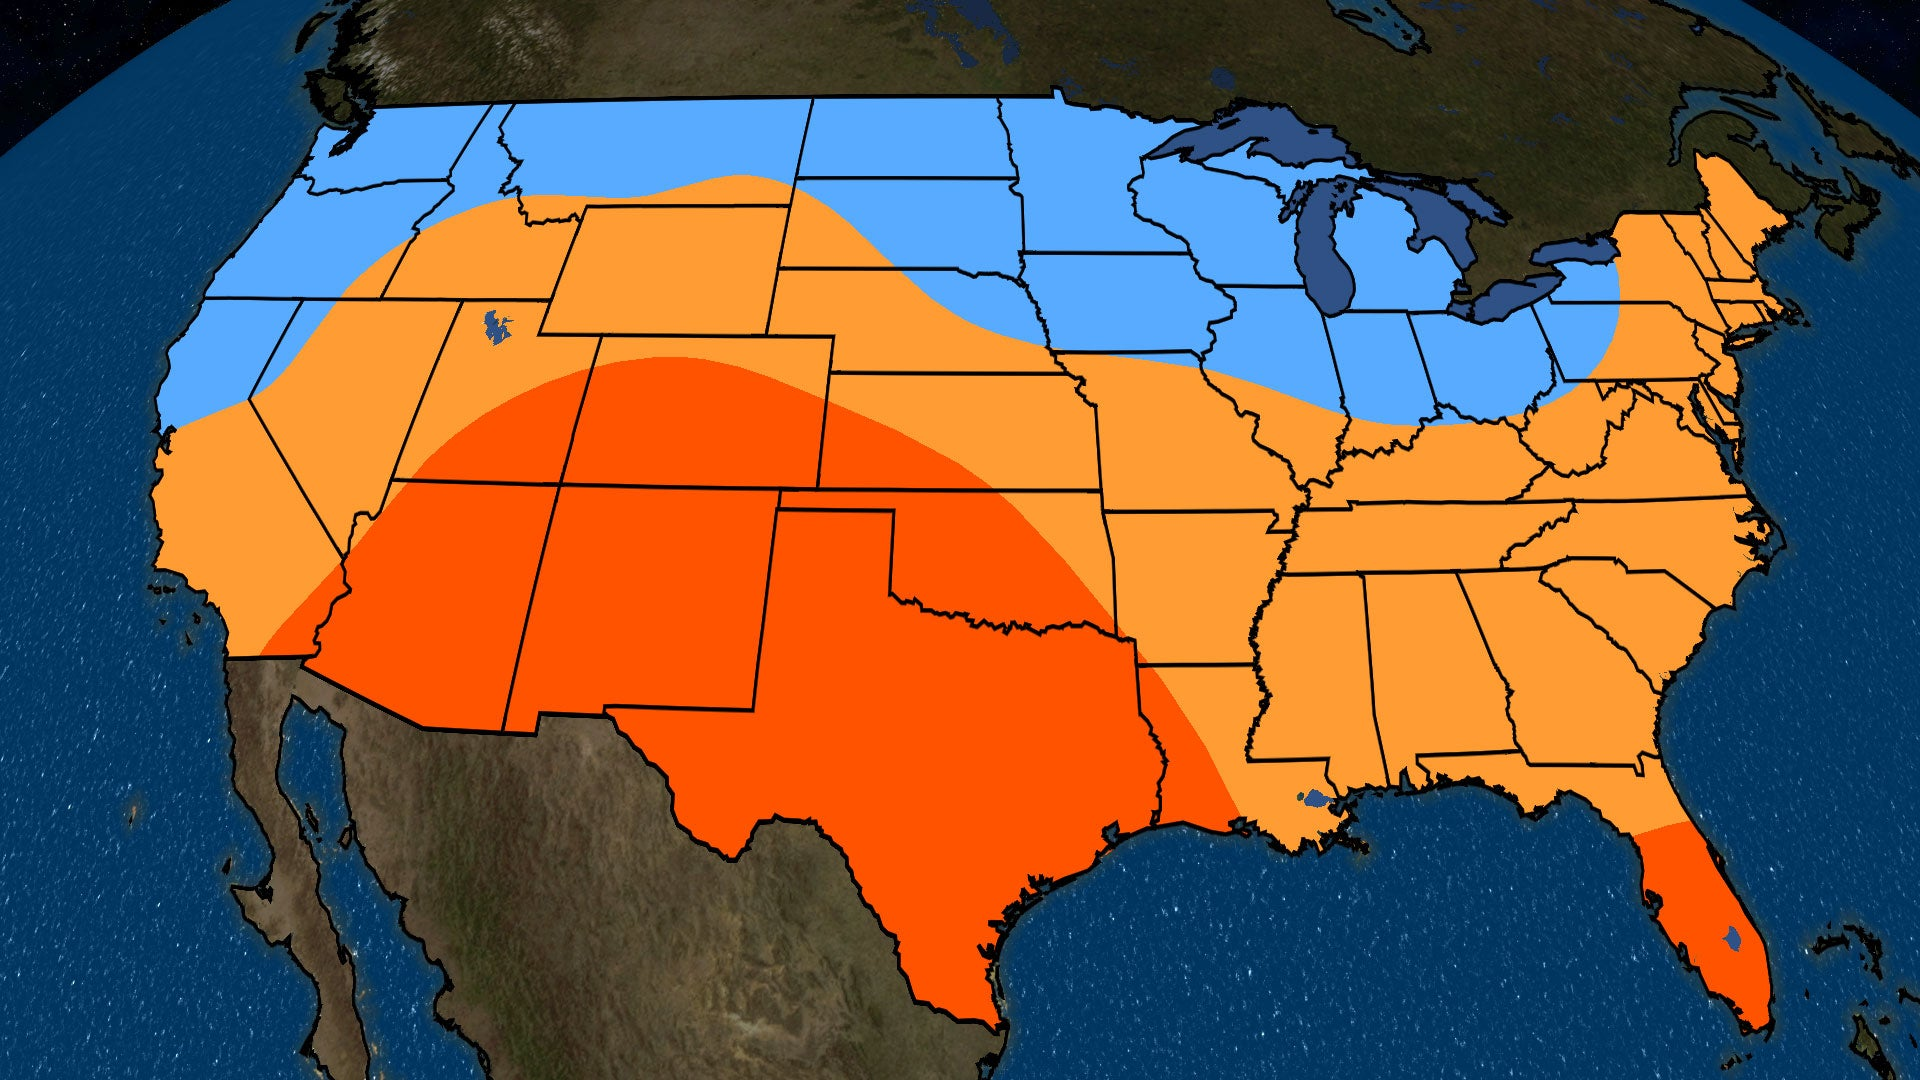 Weather Map Of The United States With Temperatures Cocorahs - 10 day weather map of western us